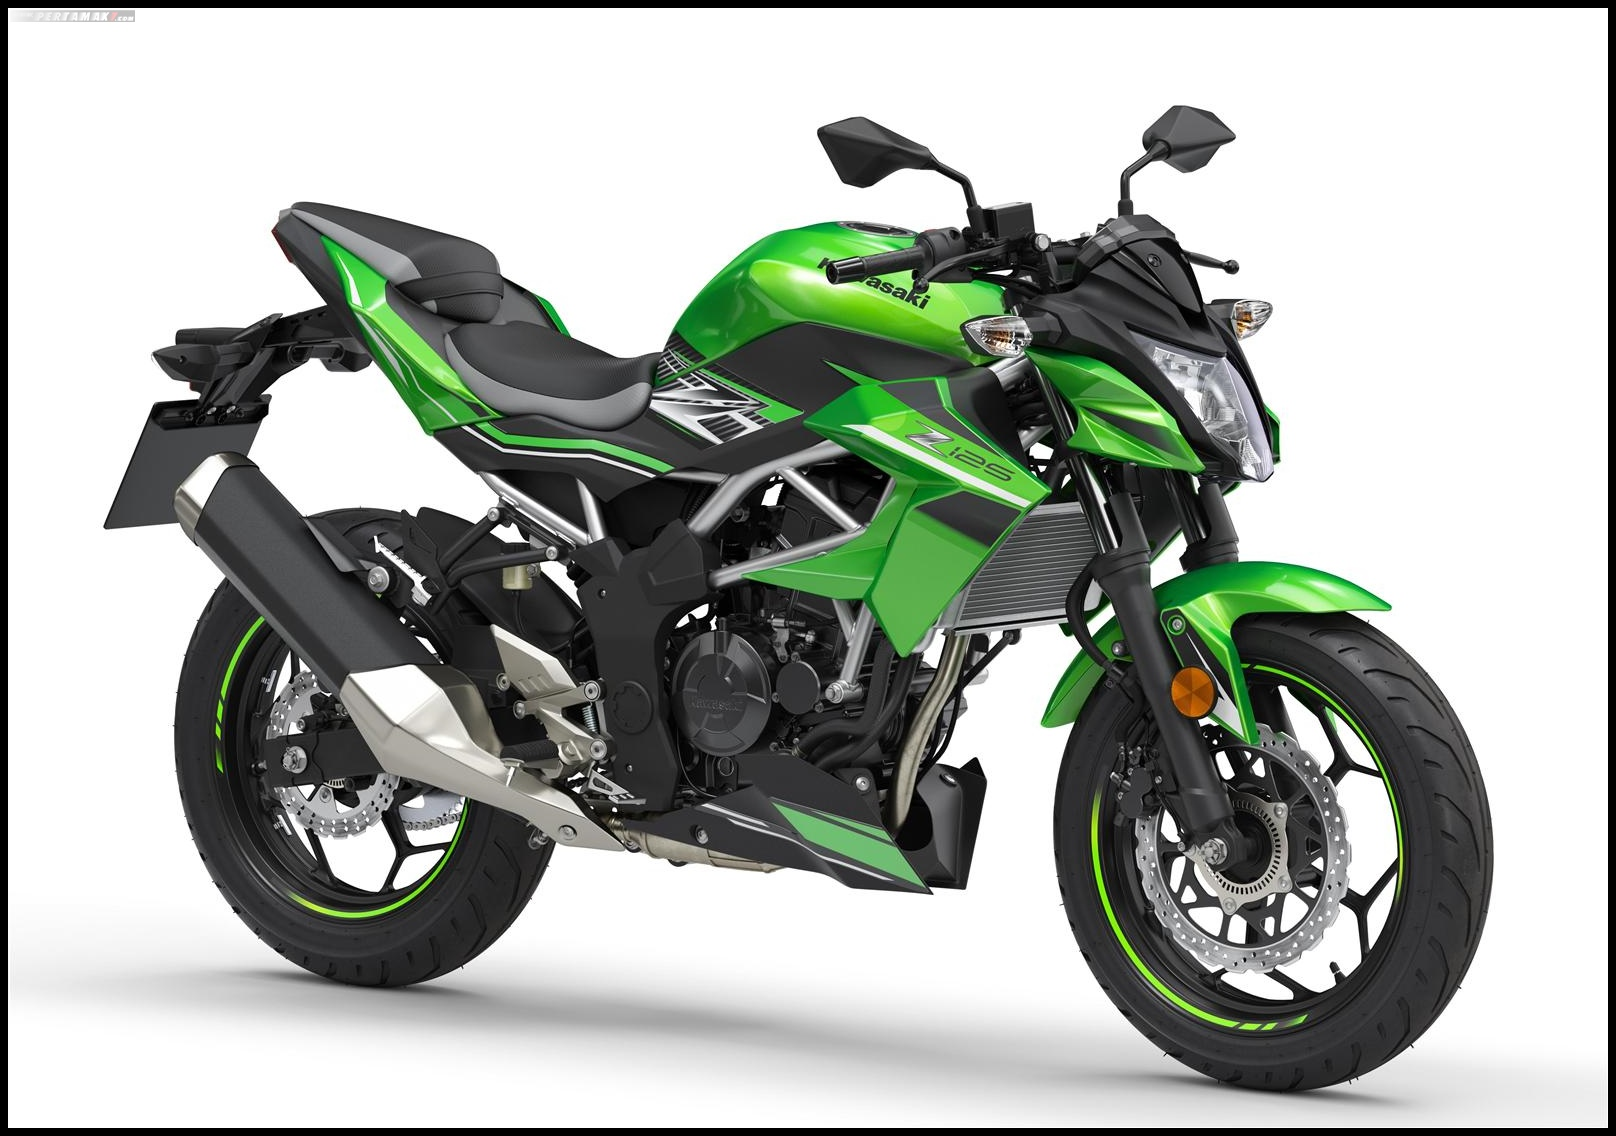 Kawasaki Z125 Warna HIjau Lime Green Ebony Metallic Graphite Gray